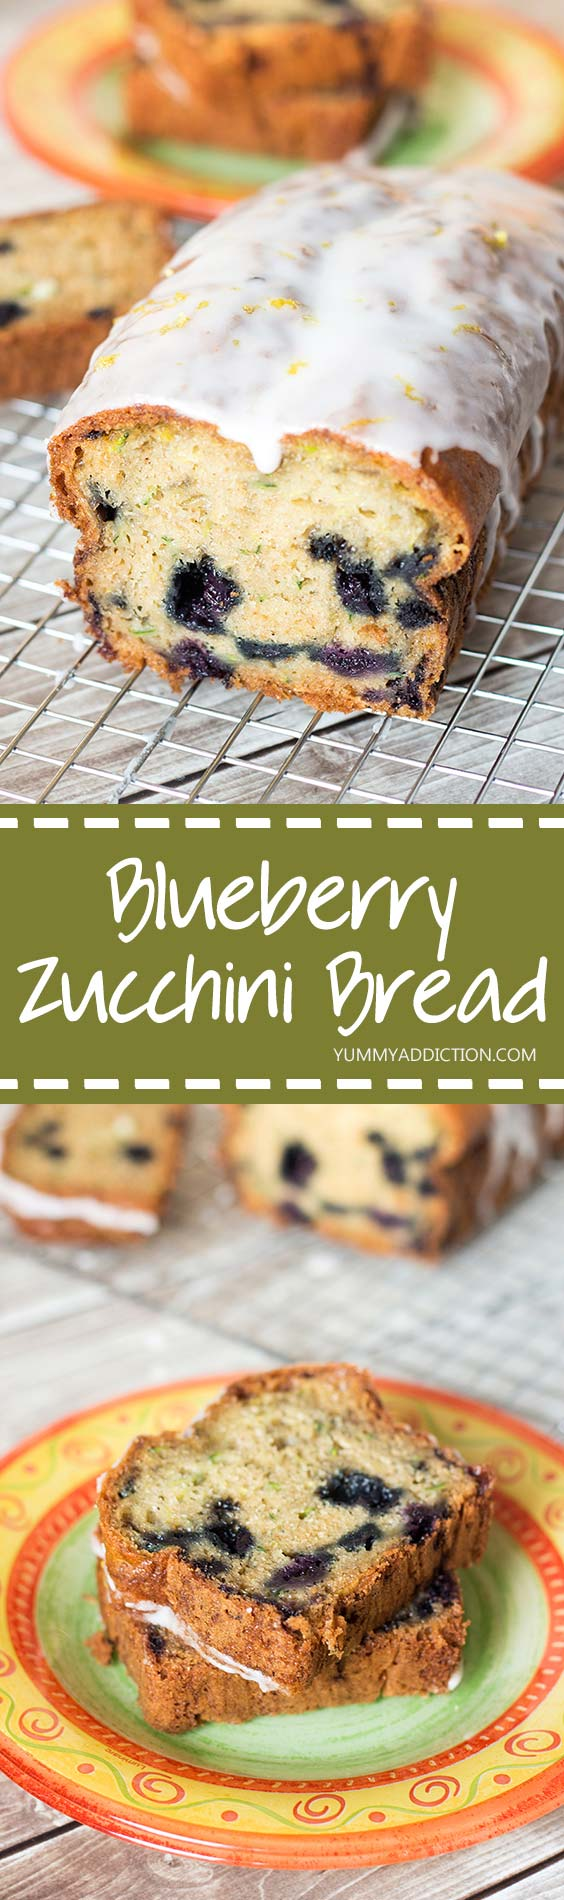 This Blueberry Zucchini Bread is super delicious and really easy to make. It will become your instant favorite! | yummyaddiction.com